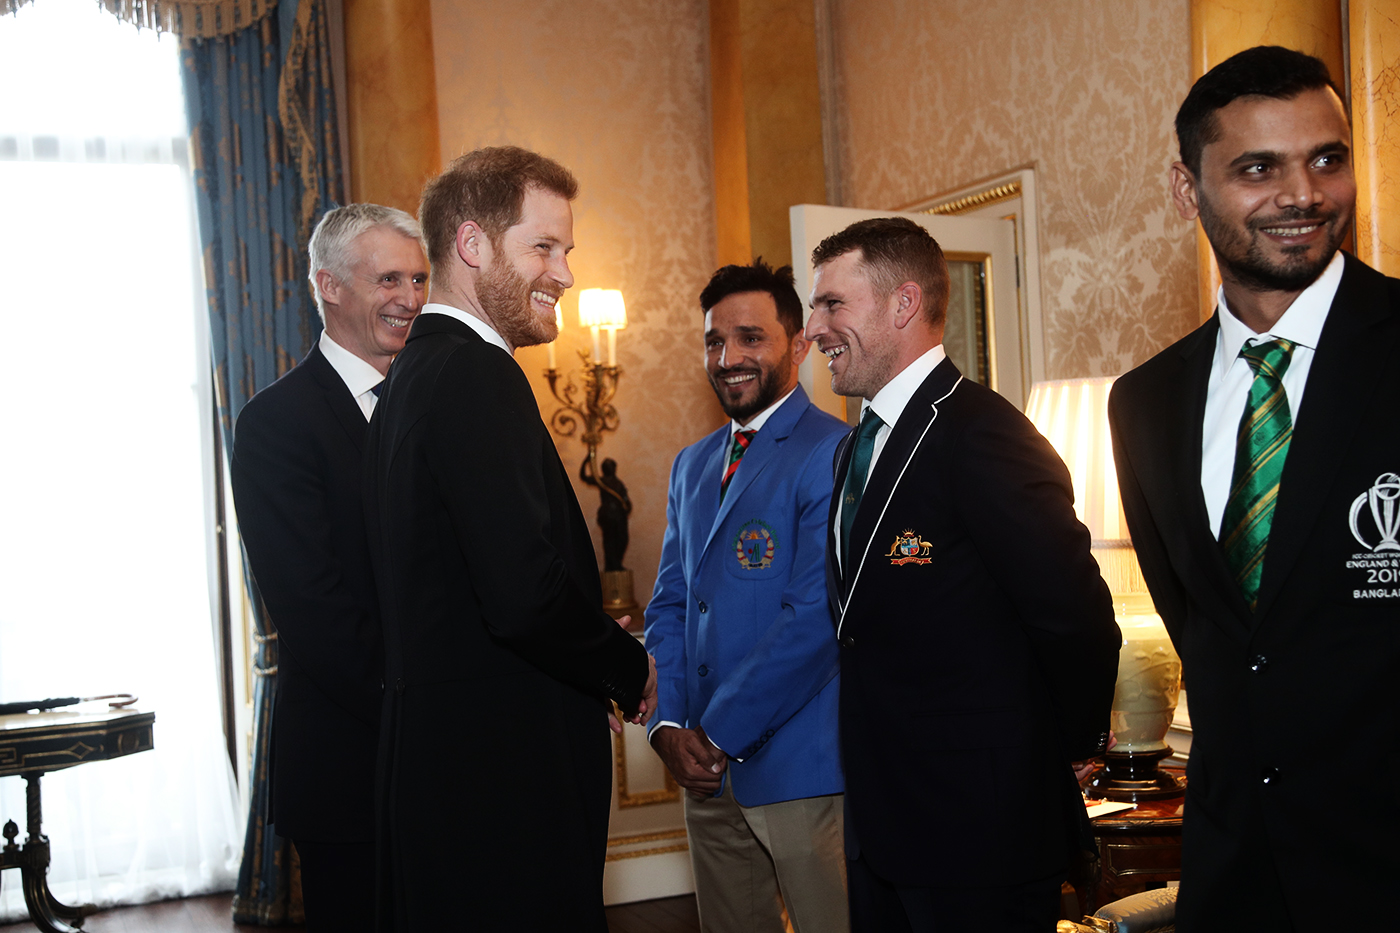 The perks of being a World Cup captain: having a laugh with Prince Harry in 2019